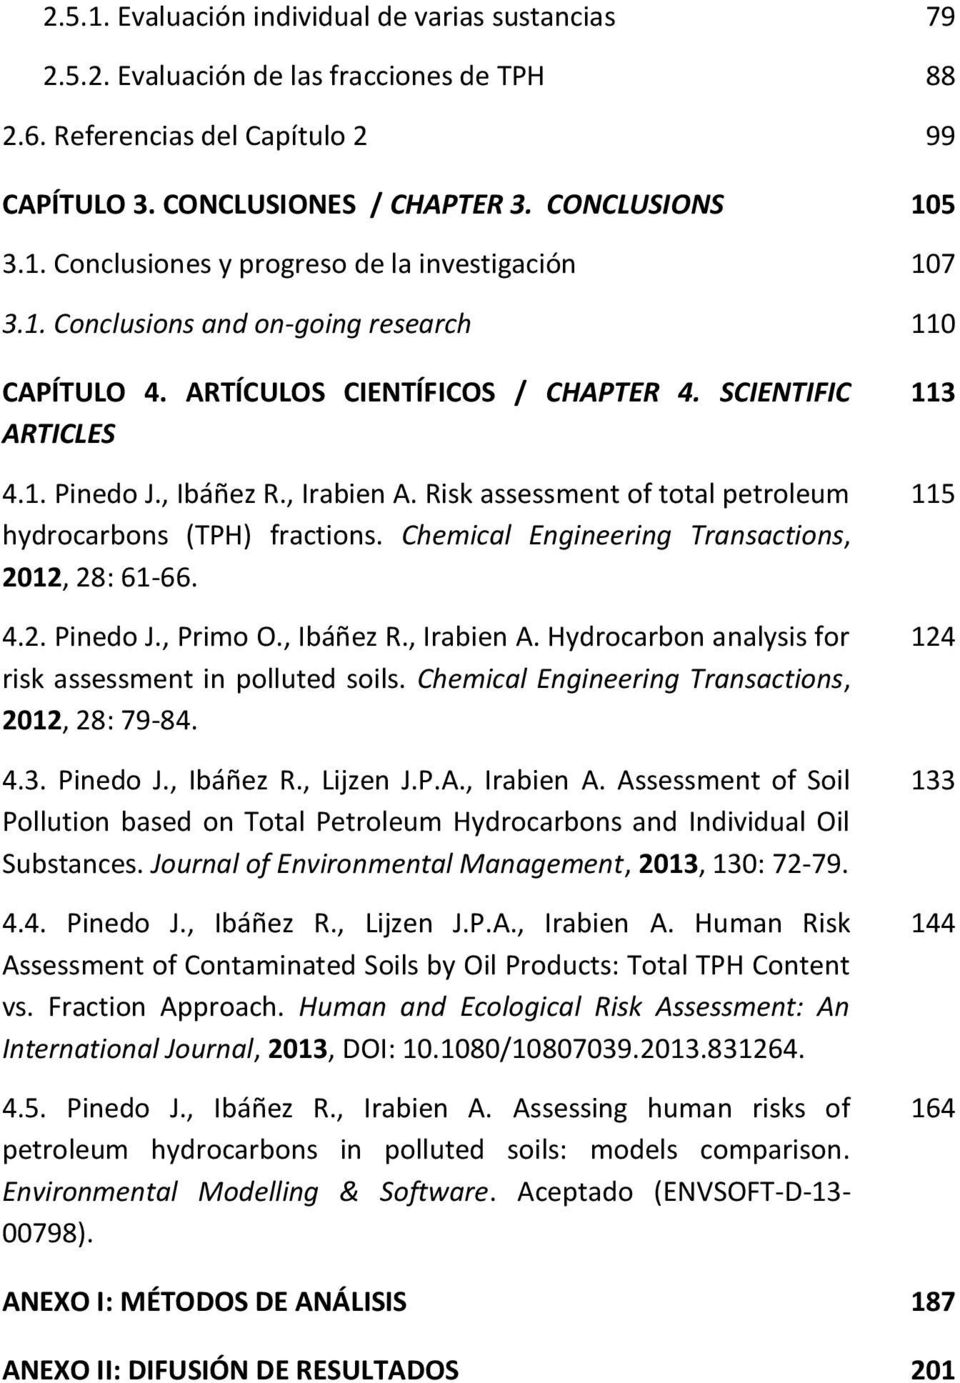 Risk assessment of total petroleum hydrocarbons (TPH) fractions. Chemical Engineering Transactions, 2012, 28: 61-66. 4.2. Pinedo J., Primo O., Ibáñez R., Irabien A.